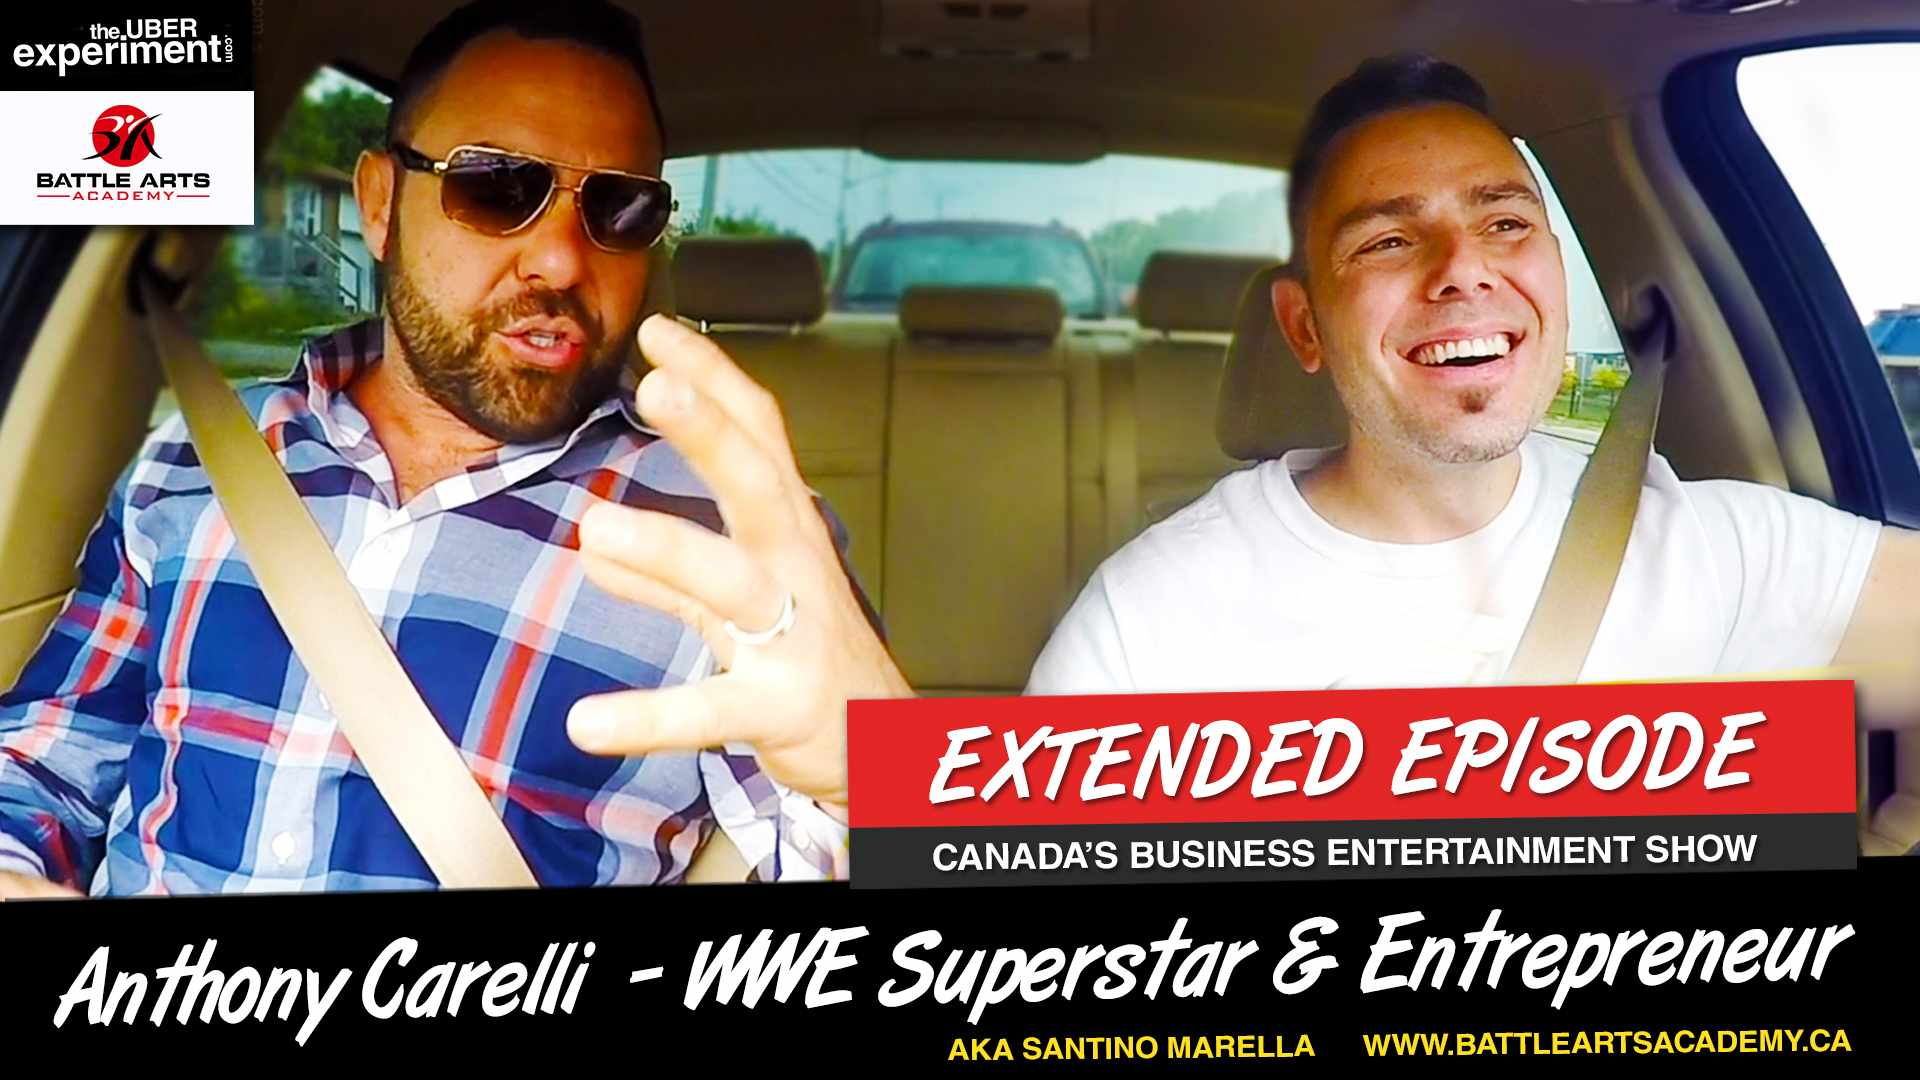 WWE Superstar Anthony Carelli (AKA Santino Marella) Talks Wrestling, Entrepreneurship, Family & Political Future on The UBER Experiment